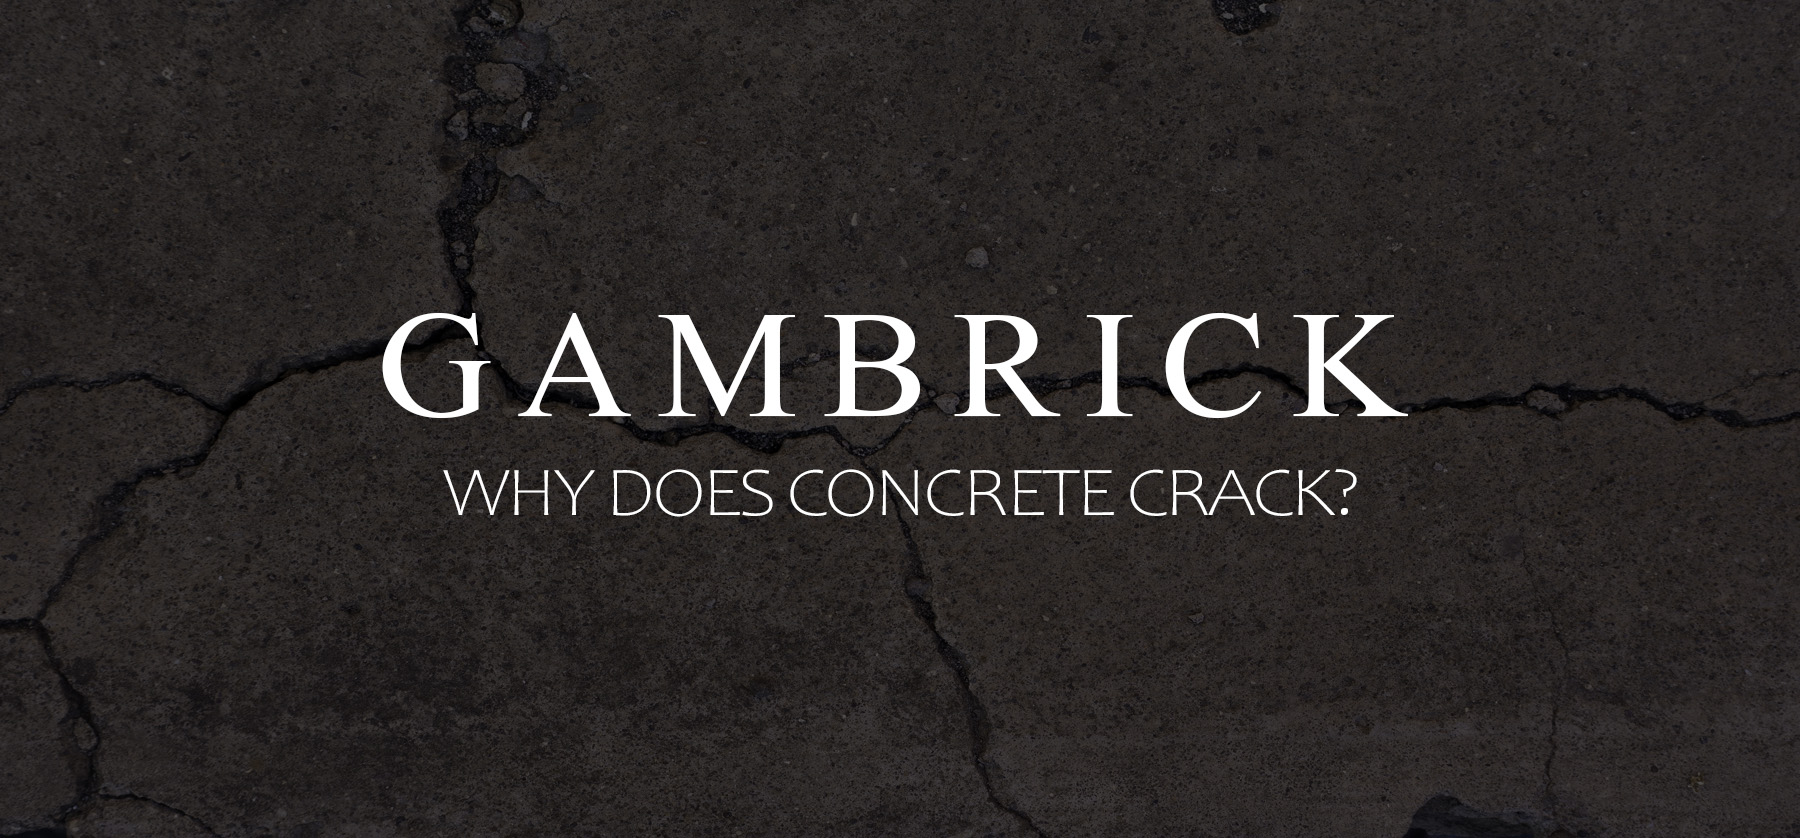 why does concrete crack banner pic